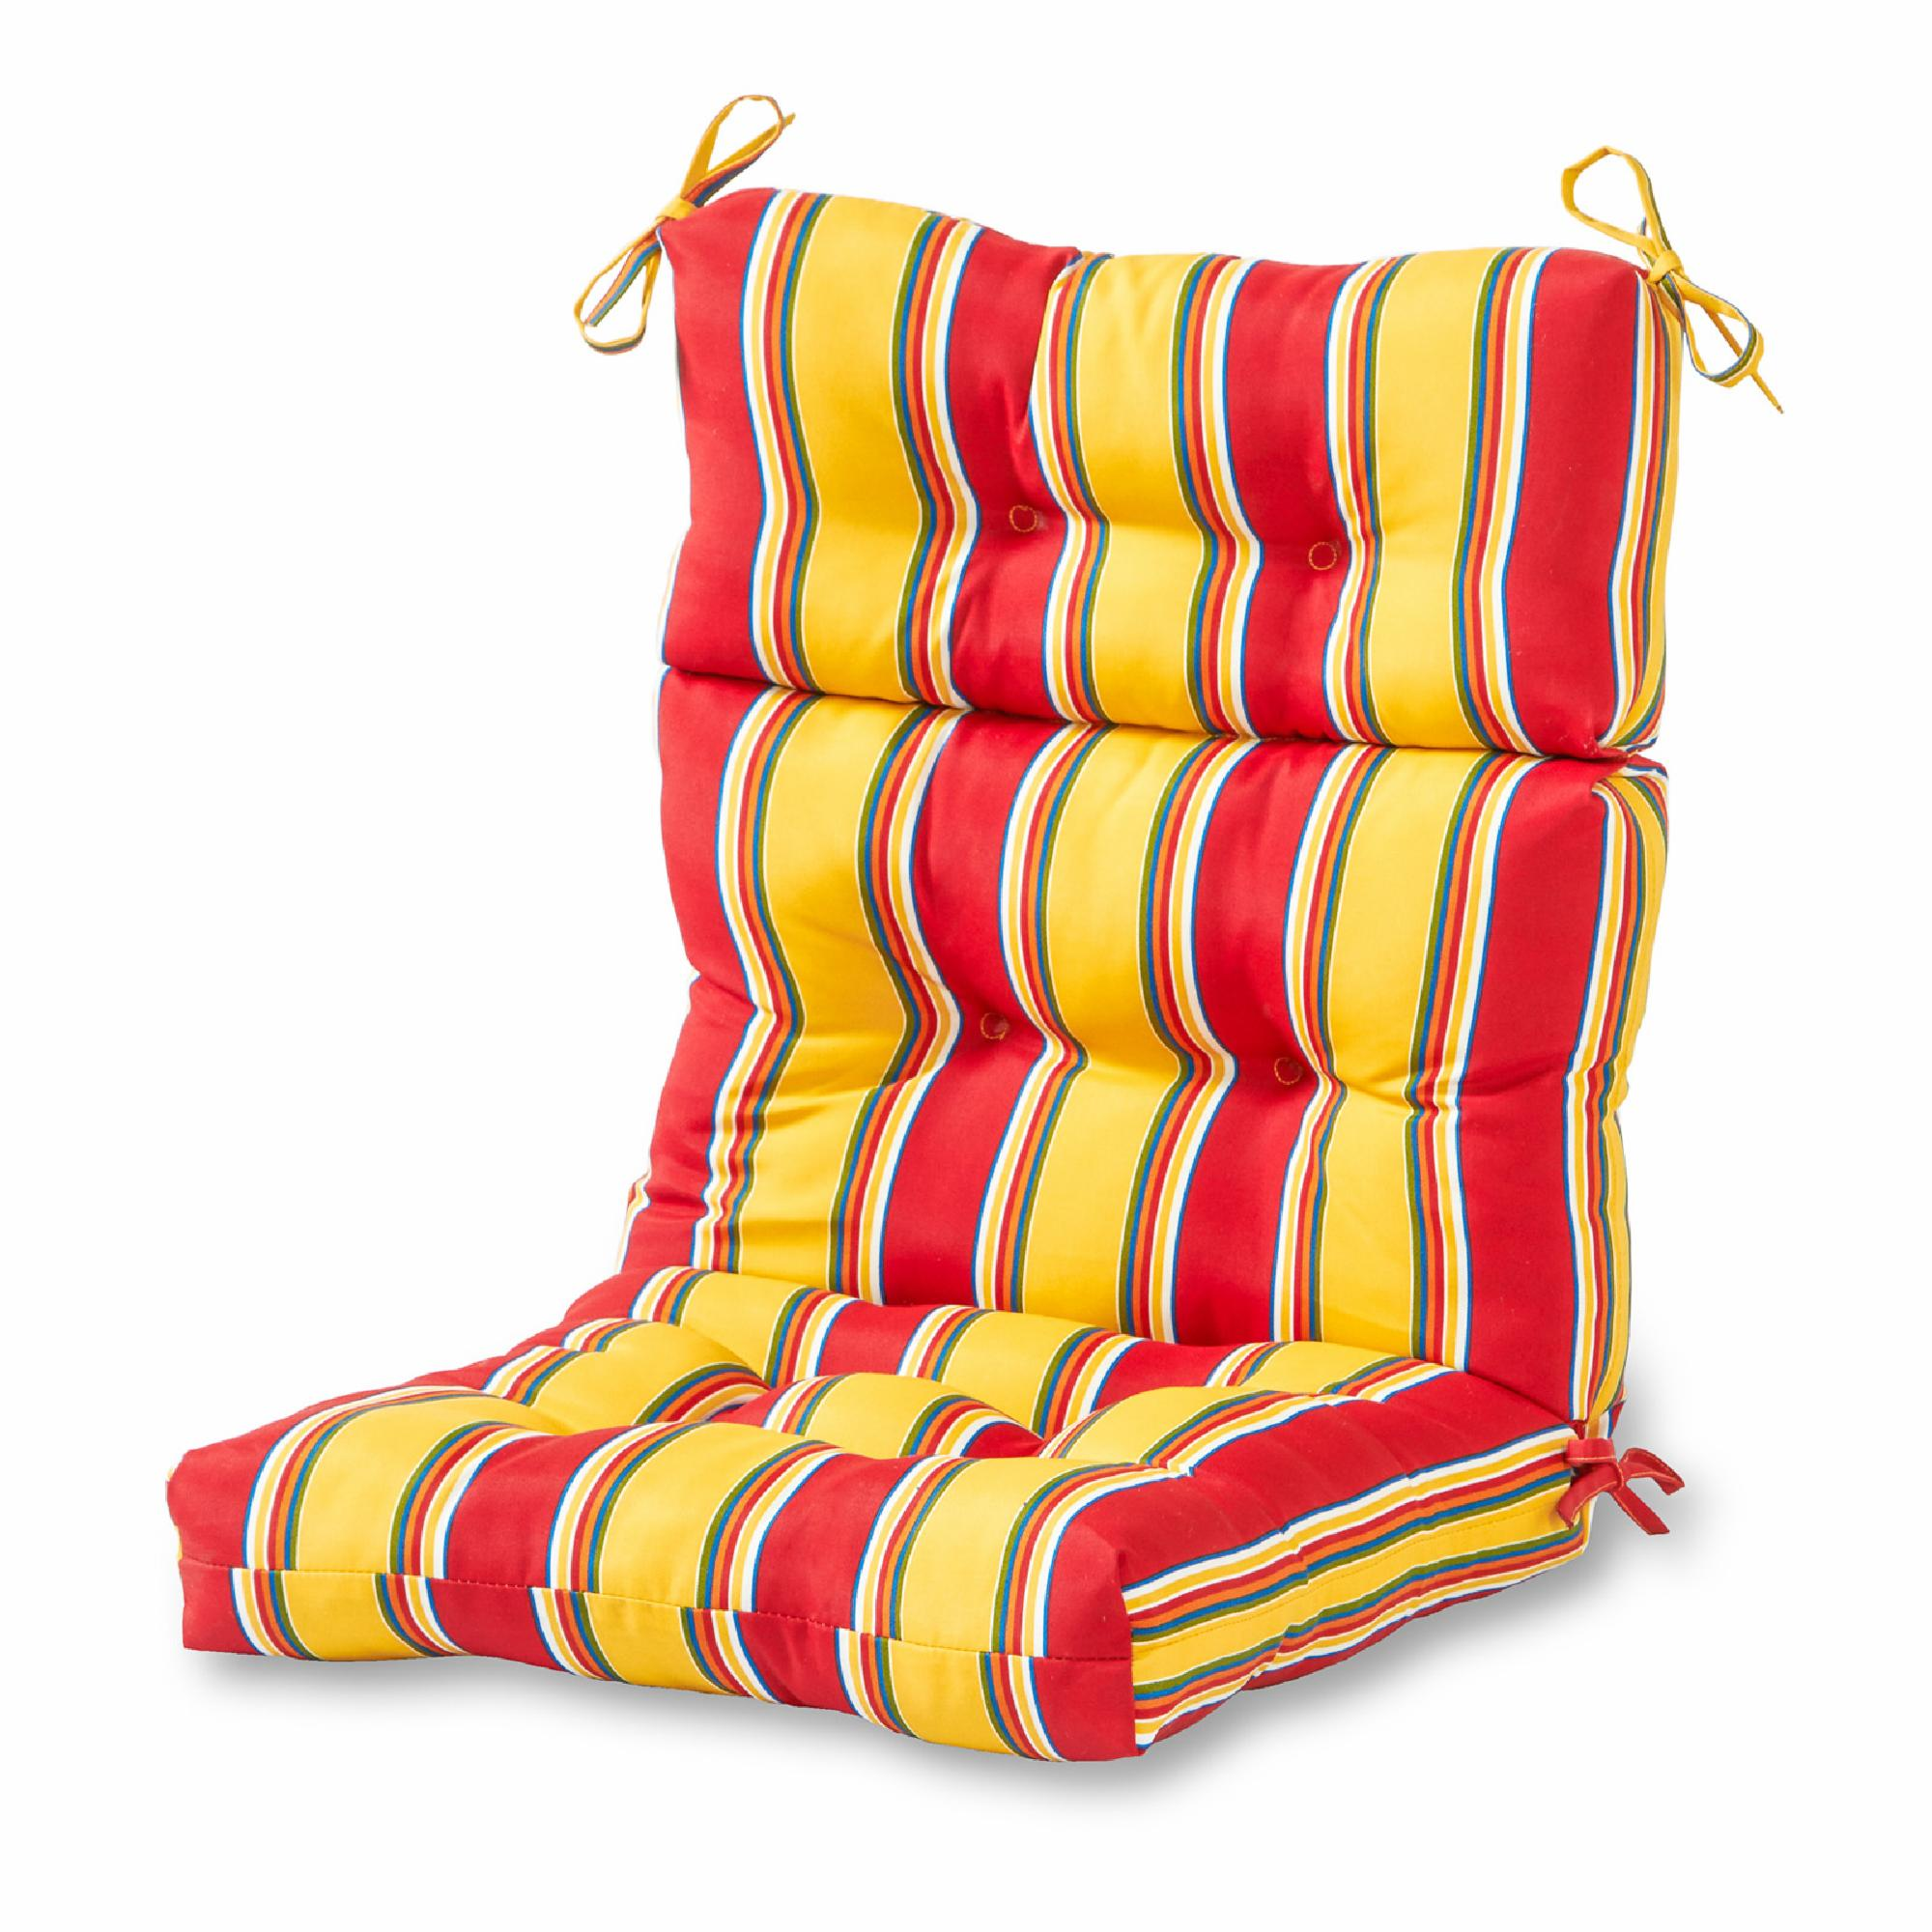 greendale home fashions outdoor cushions on hayneedle shop outdoor cushions by greendale home fashions